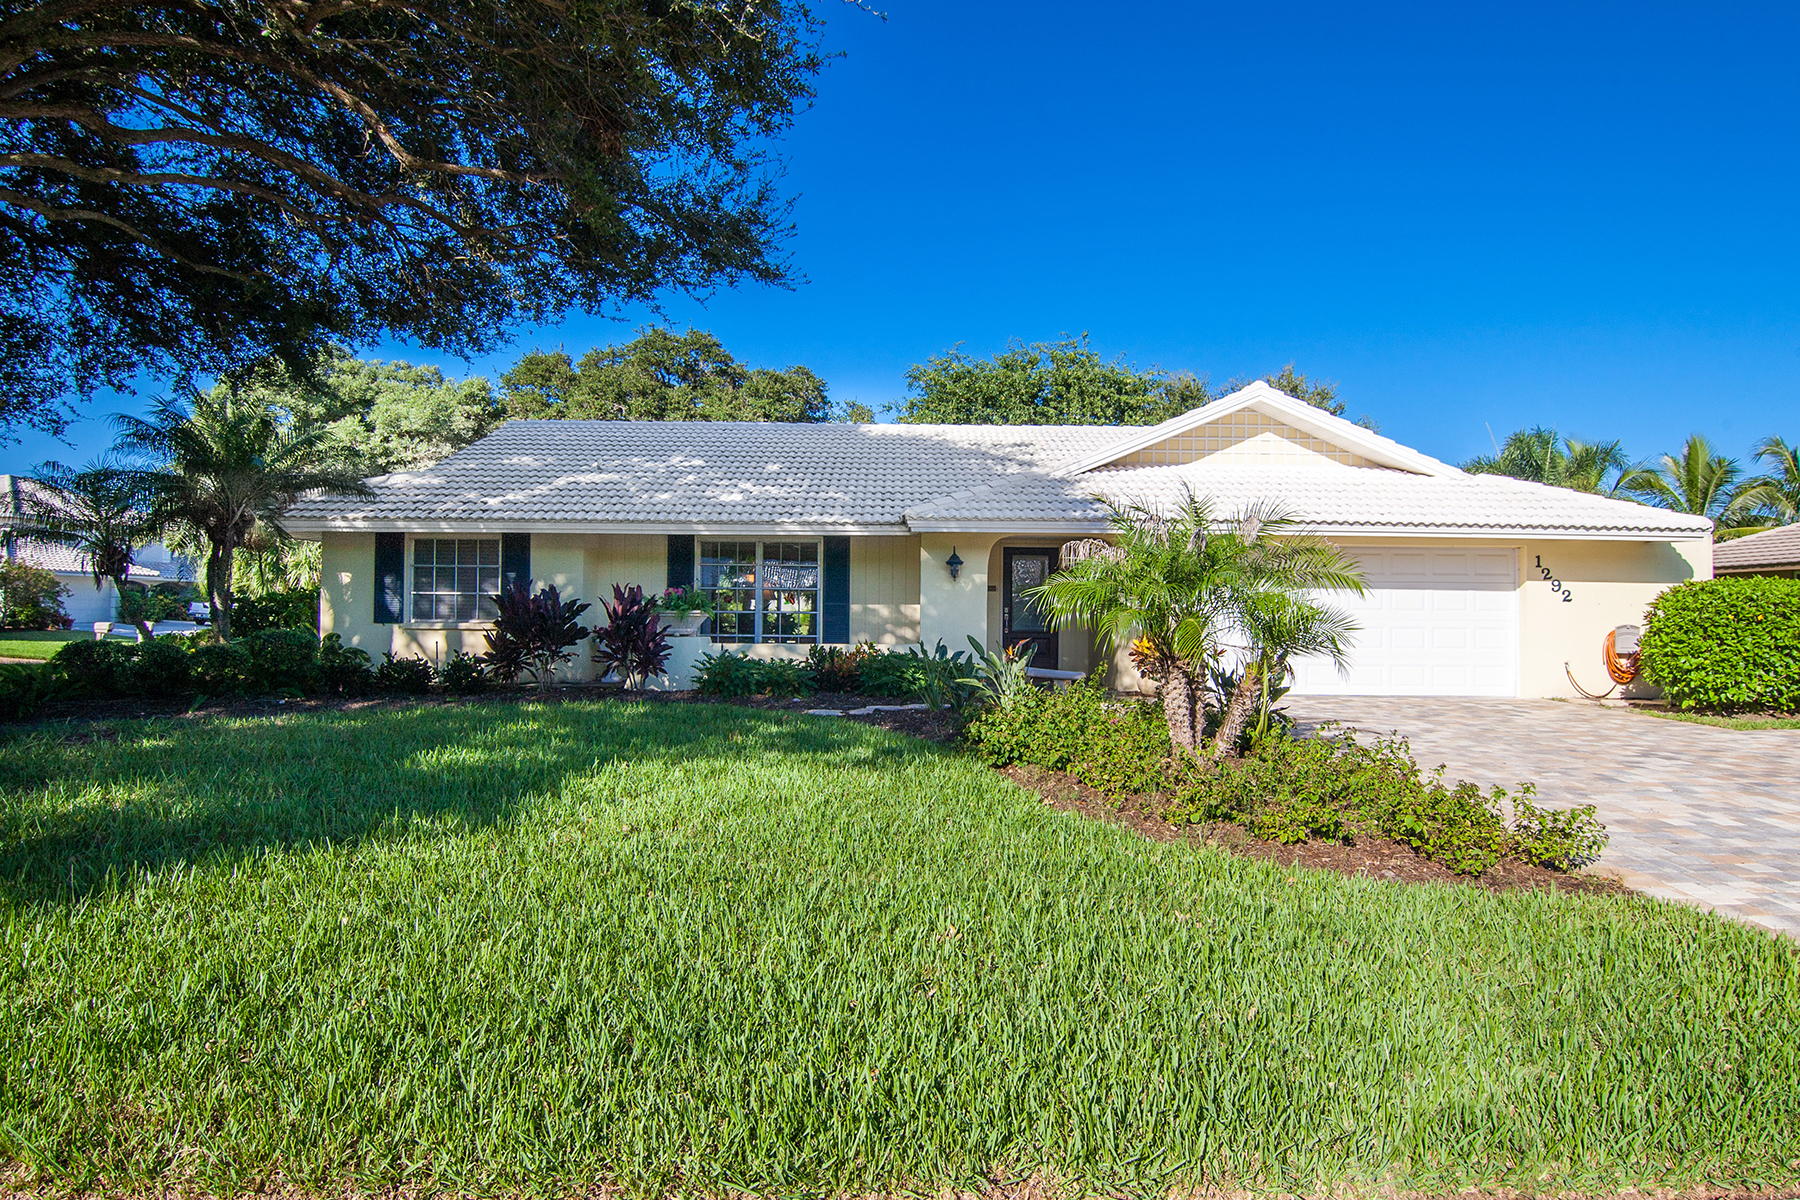 Single Family Home for Sale at SOUTHBAY YACHT & RACQUET CLUB 1292 Southbay Dr Osprey, Florida, 34229 United States